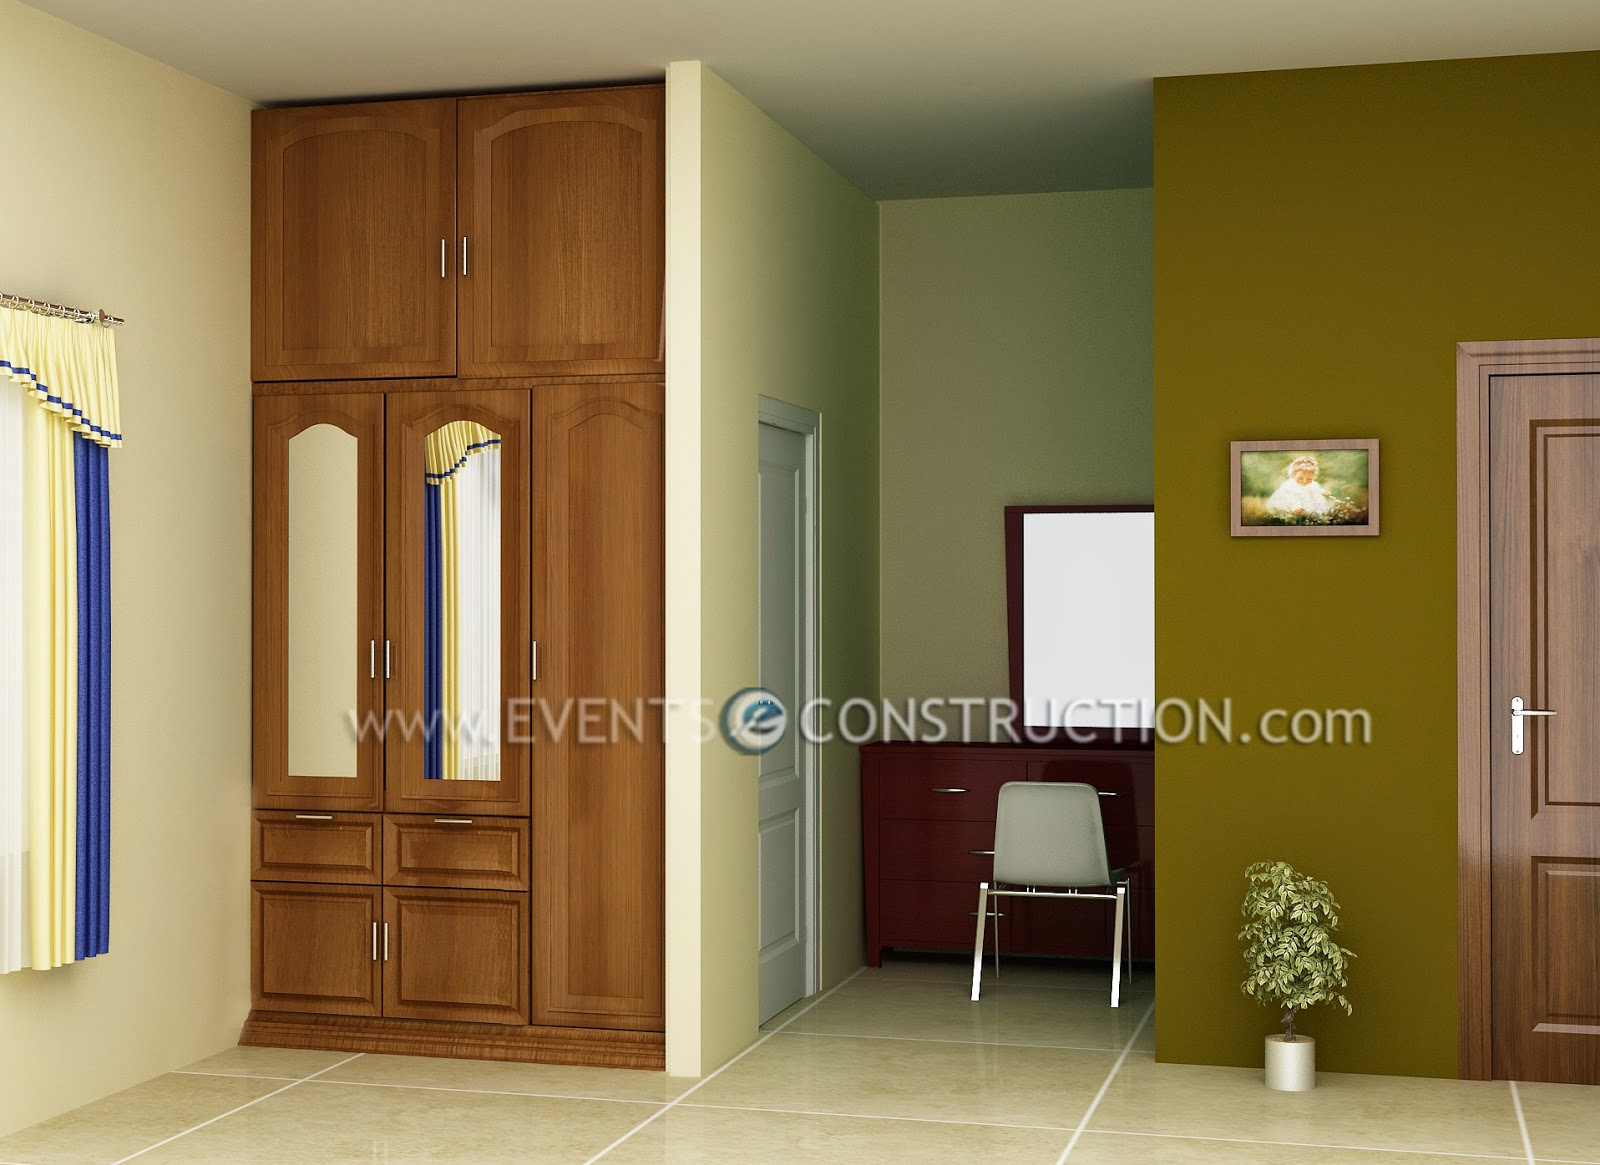 Evens Construction Pvt Ltd Dressing Area And Wooden Wardrobe